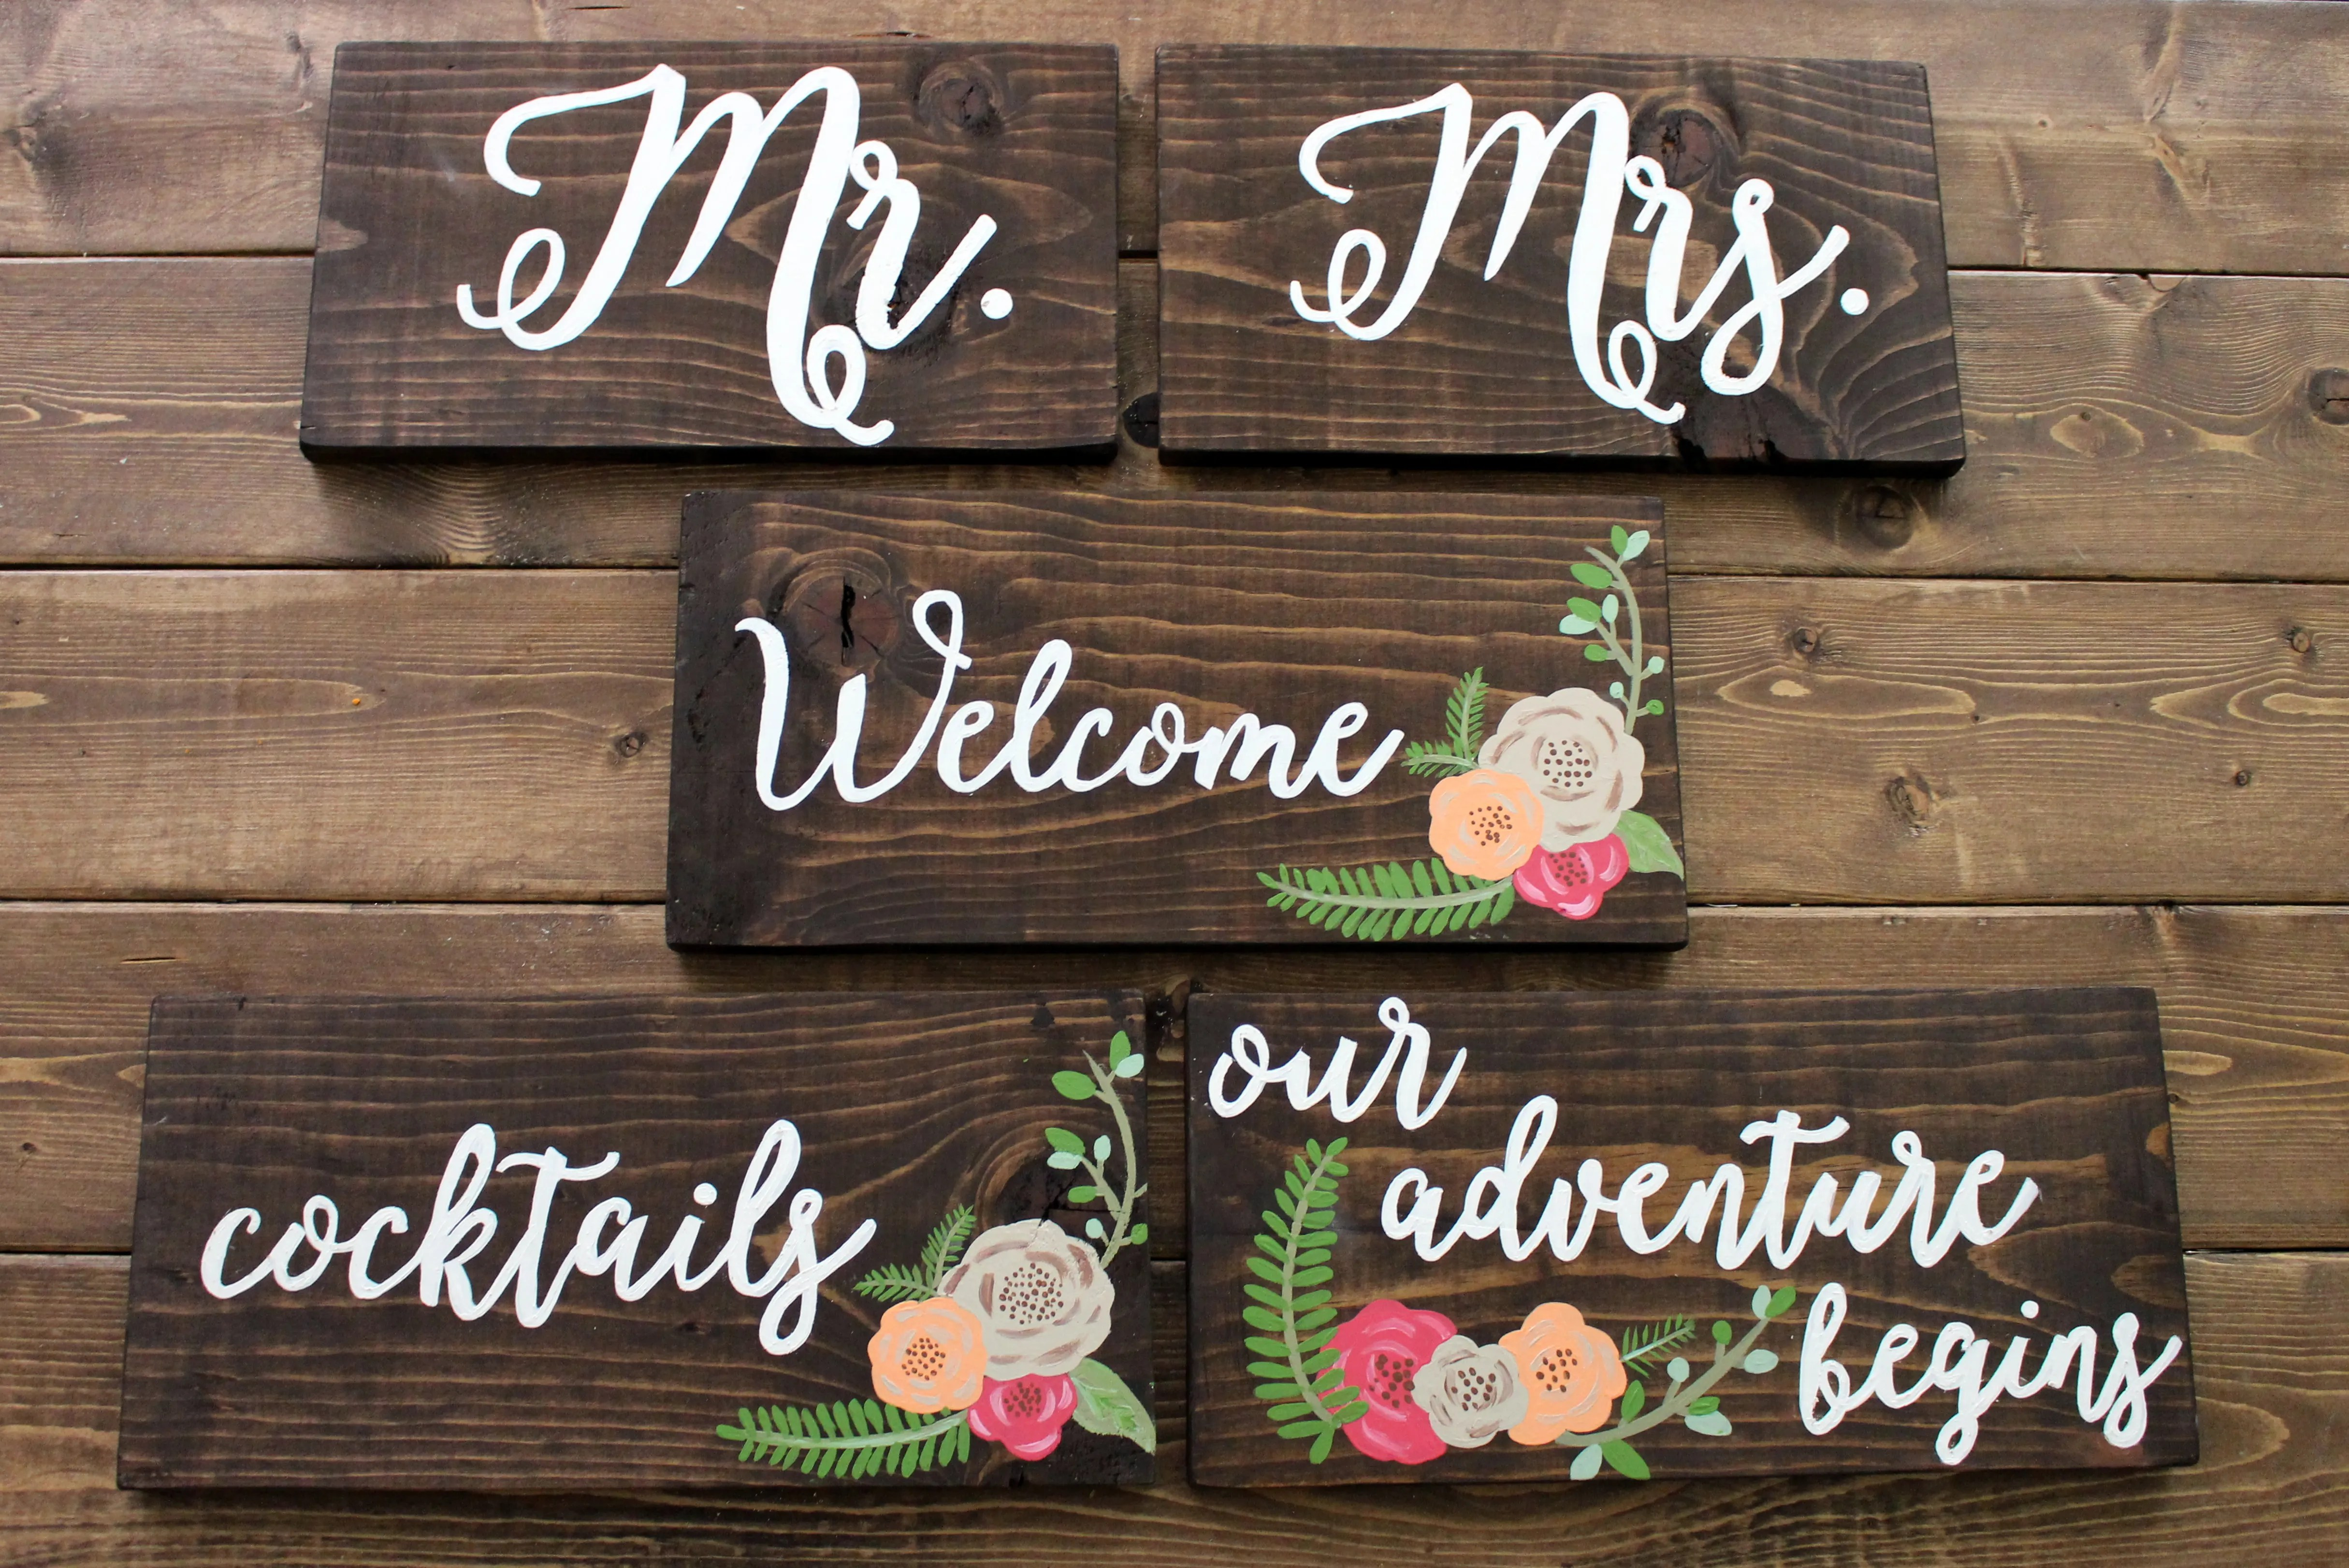 Diy Wedding Calligraphy Signs Within The Grove